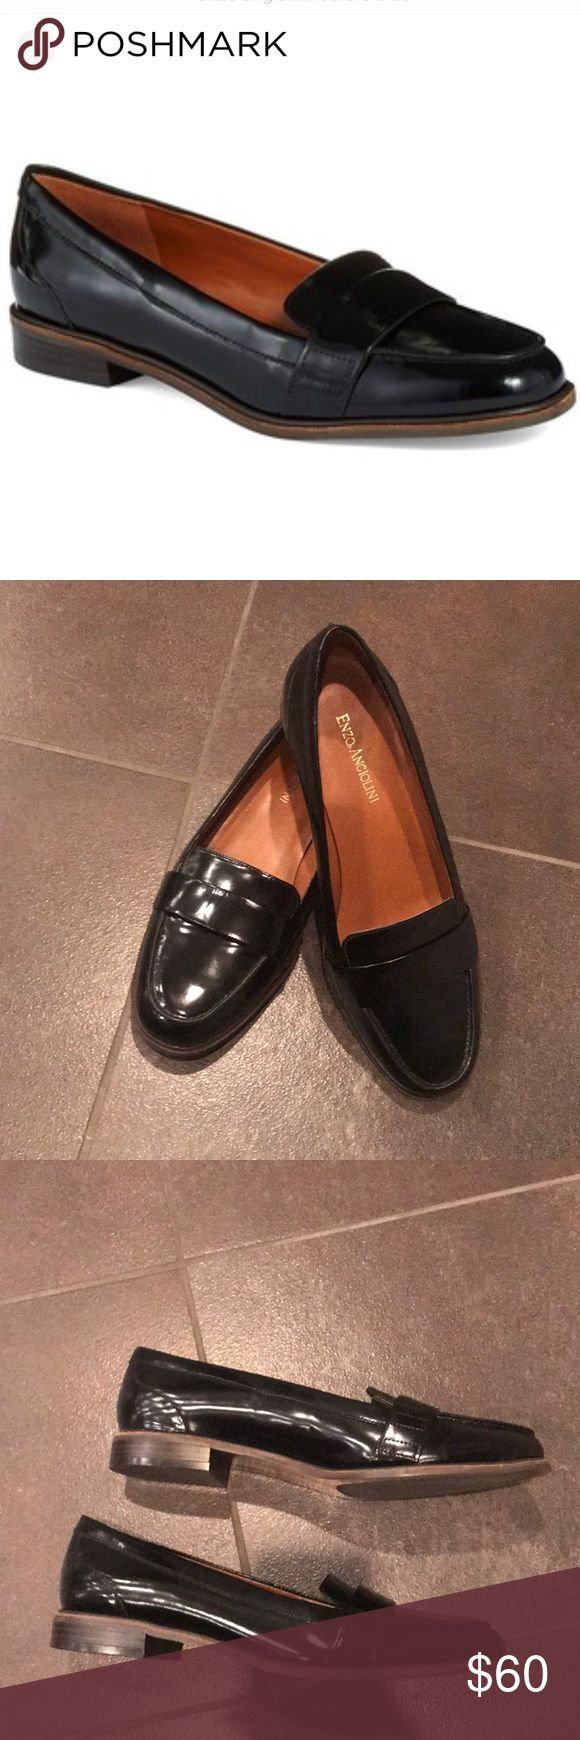 Enzo Angiolini Black Leather Loafers Slip On 8.5 Black Leather Enzo Angiolini loafers! In excellent condition! Worn maybe a couple of times, an easy slip on shoe that can be worn with absolutely anything (So chic and classy)! Size 8.5! Enzo Angiolini Shoes Flats & Loafers